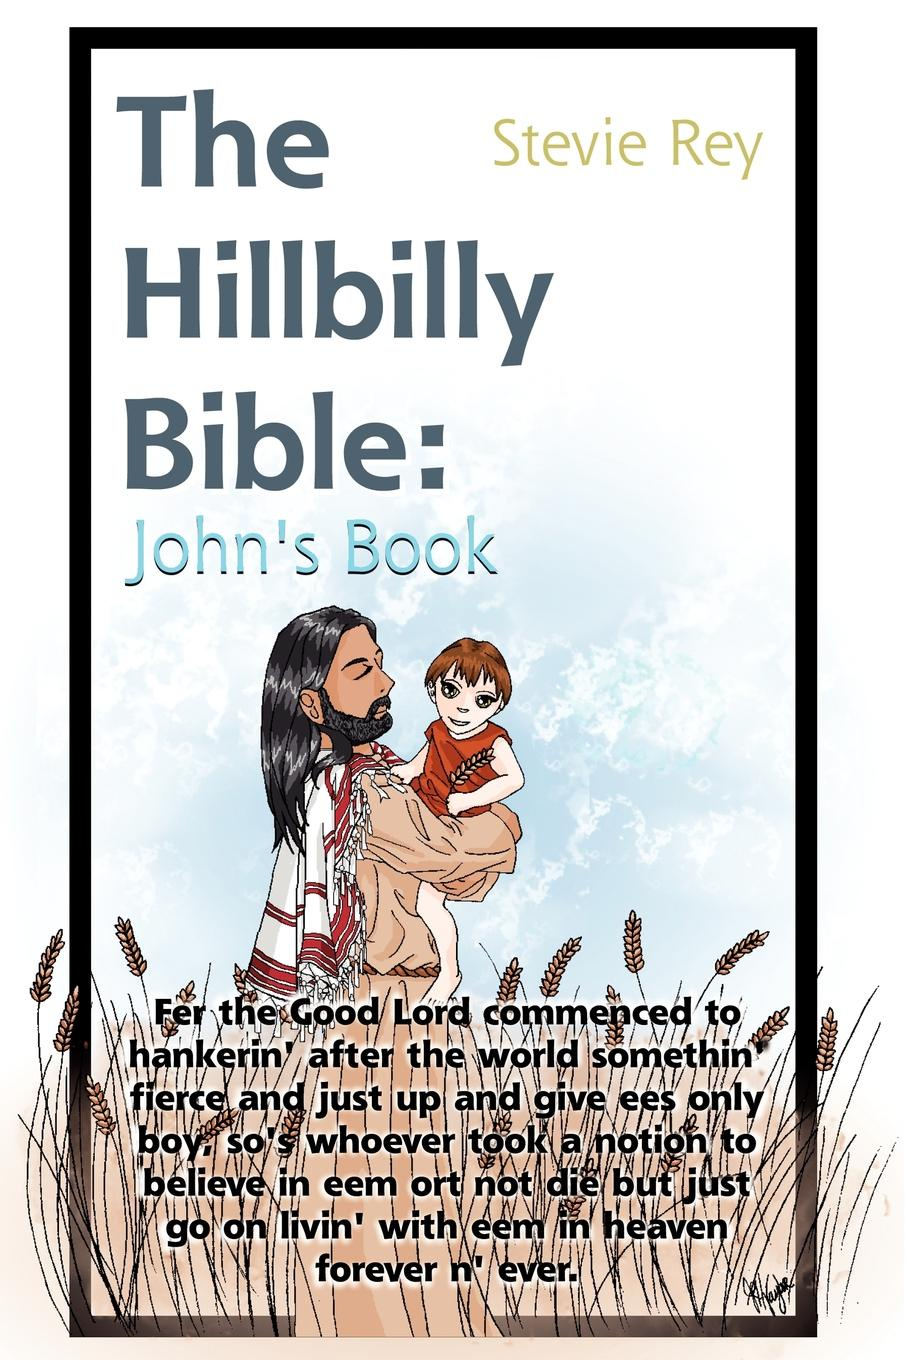 Stevie Rey The Hillbilly Bible. John